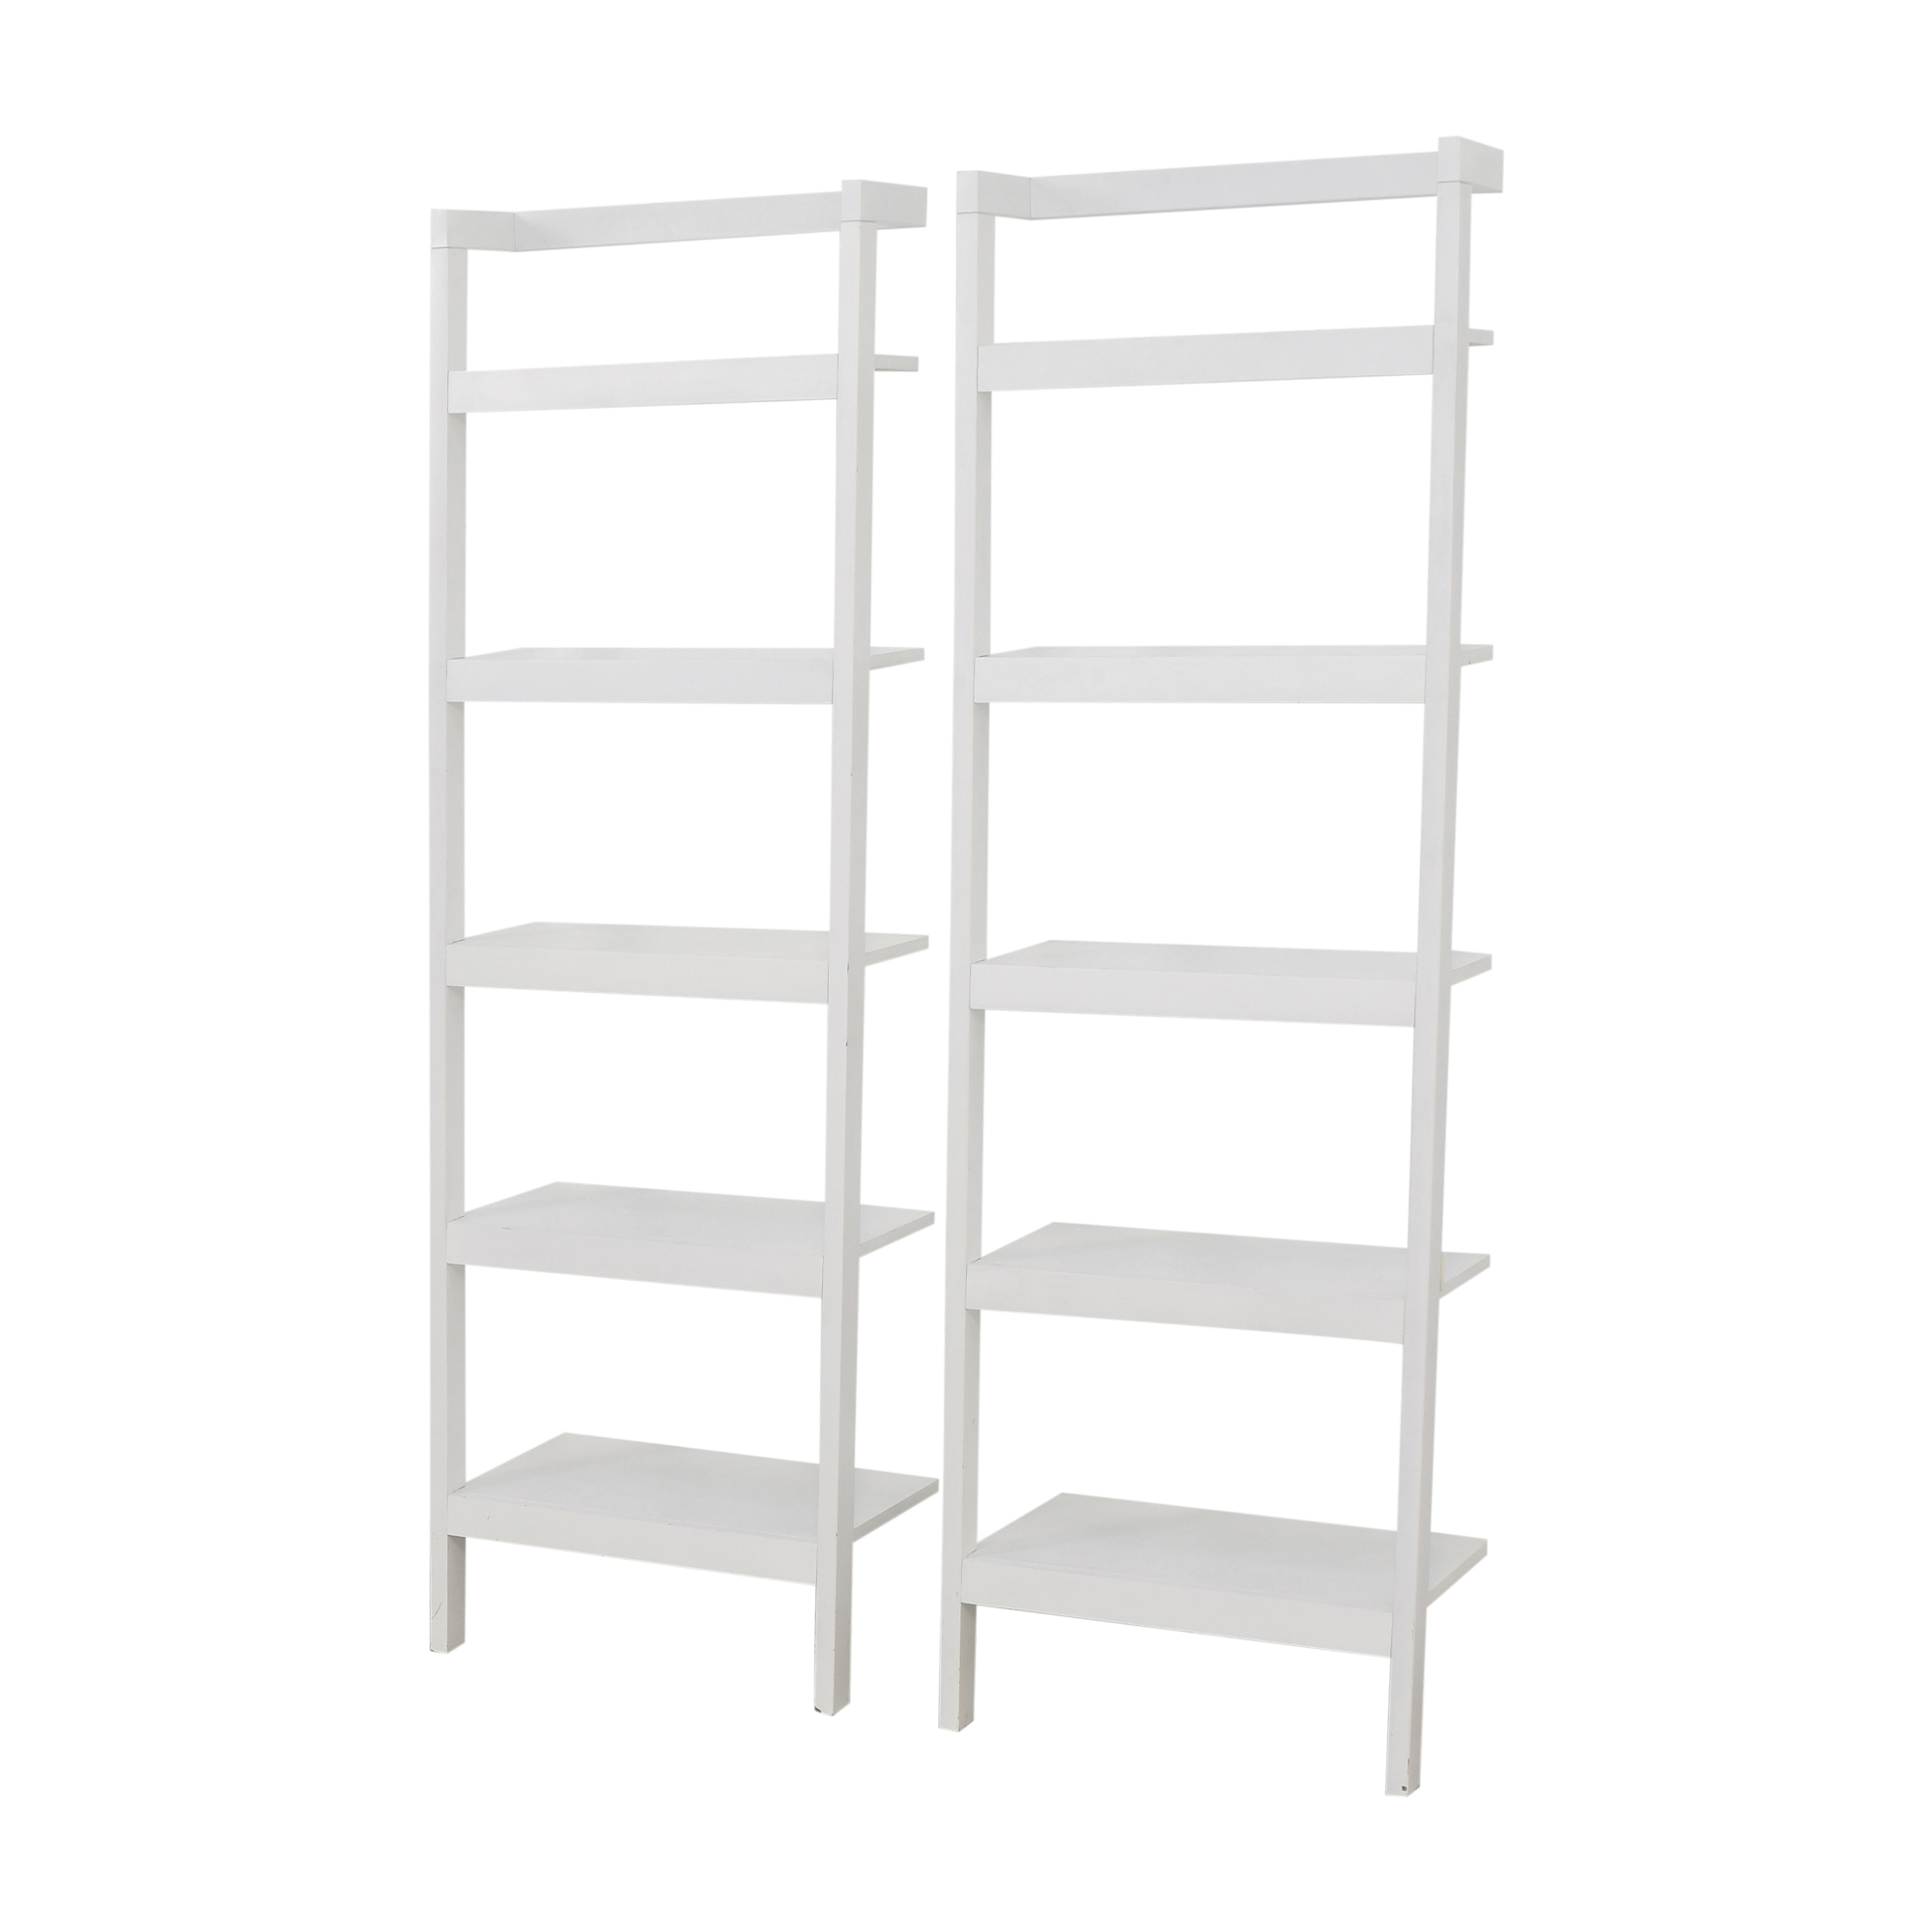 shop Crate & Barrel Leaning Shelves Crate & Barrel Storage